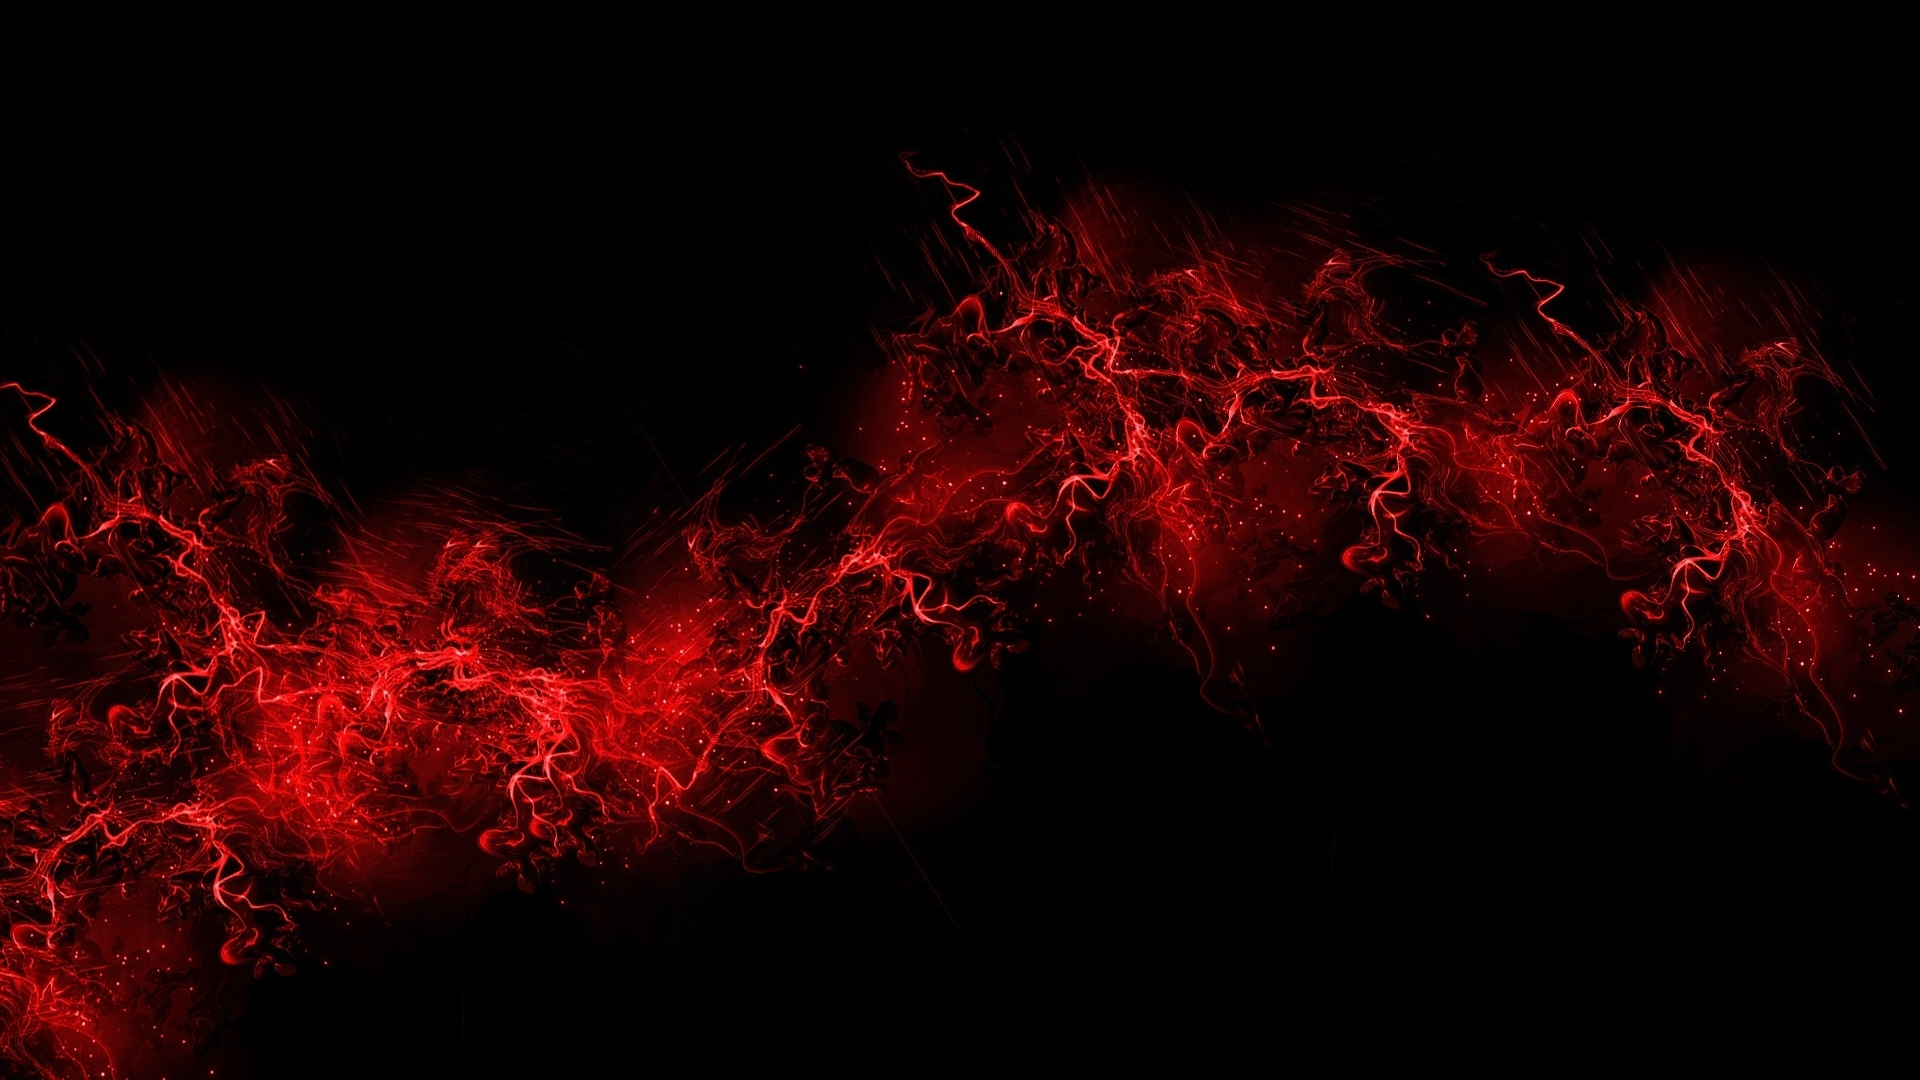 red color 1920x1080 wallpaper | wallpaperlepi